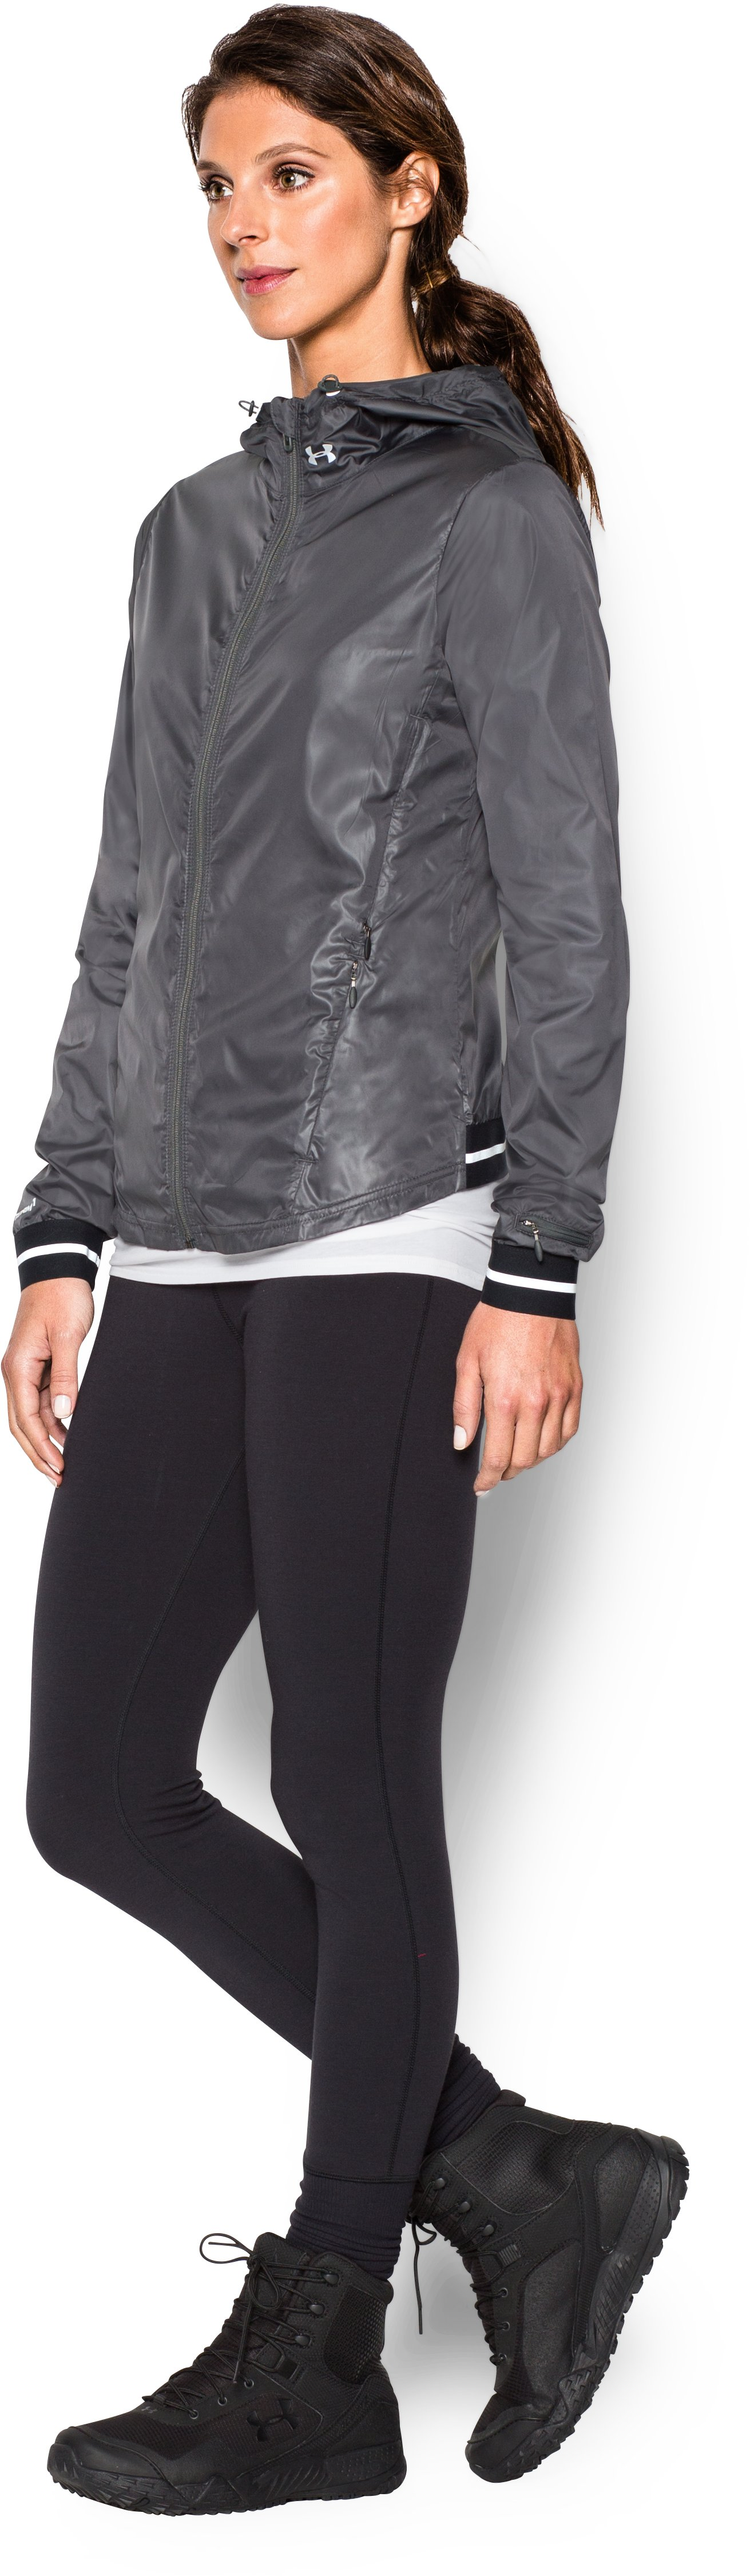 Women's UA Storm Layered Up Jacket, PHANTOM GRAY